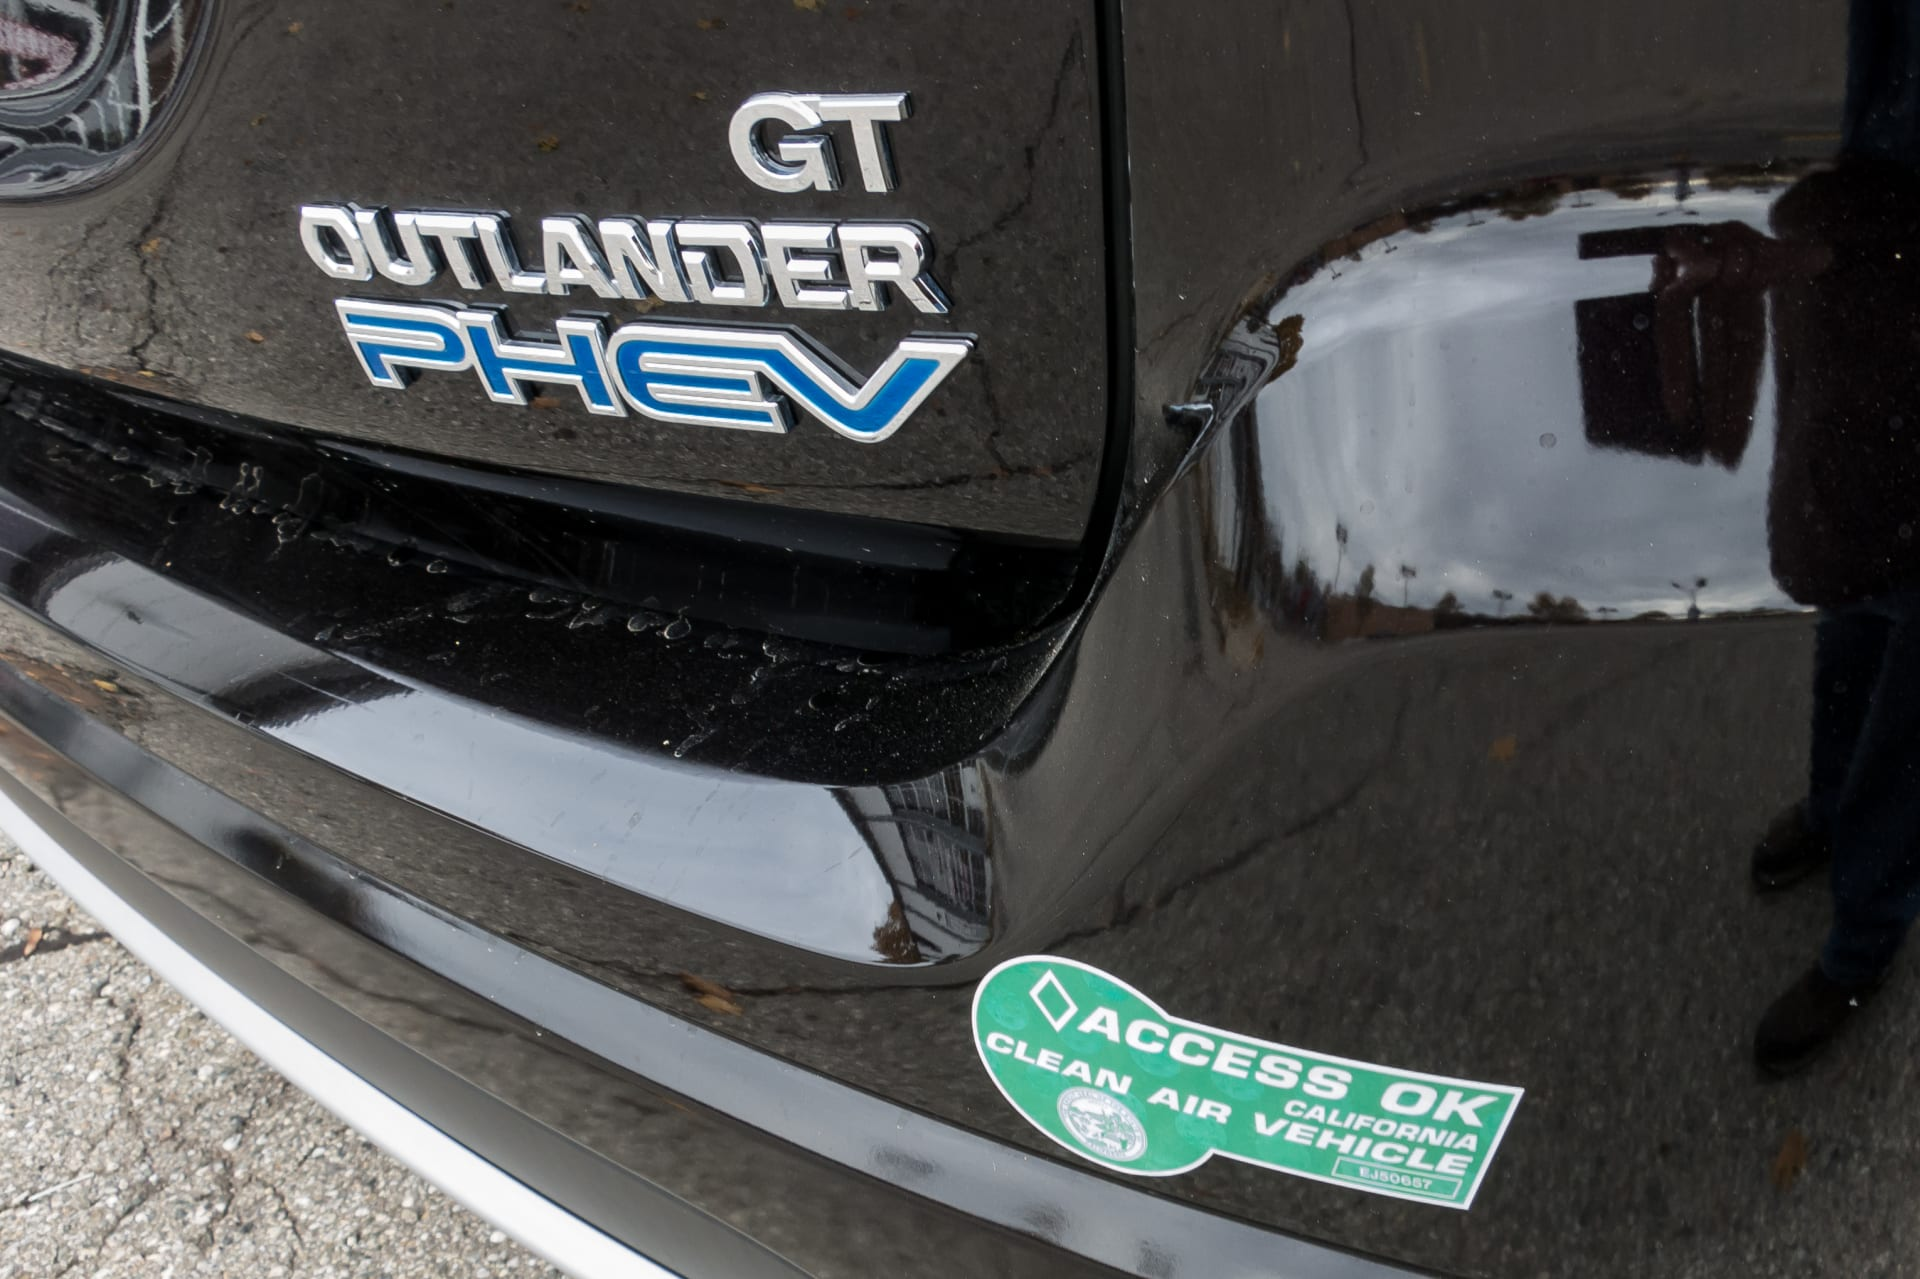 2018 Mitsubishi Outlander PHEV: Perfect Hybrid SUV for Very